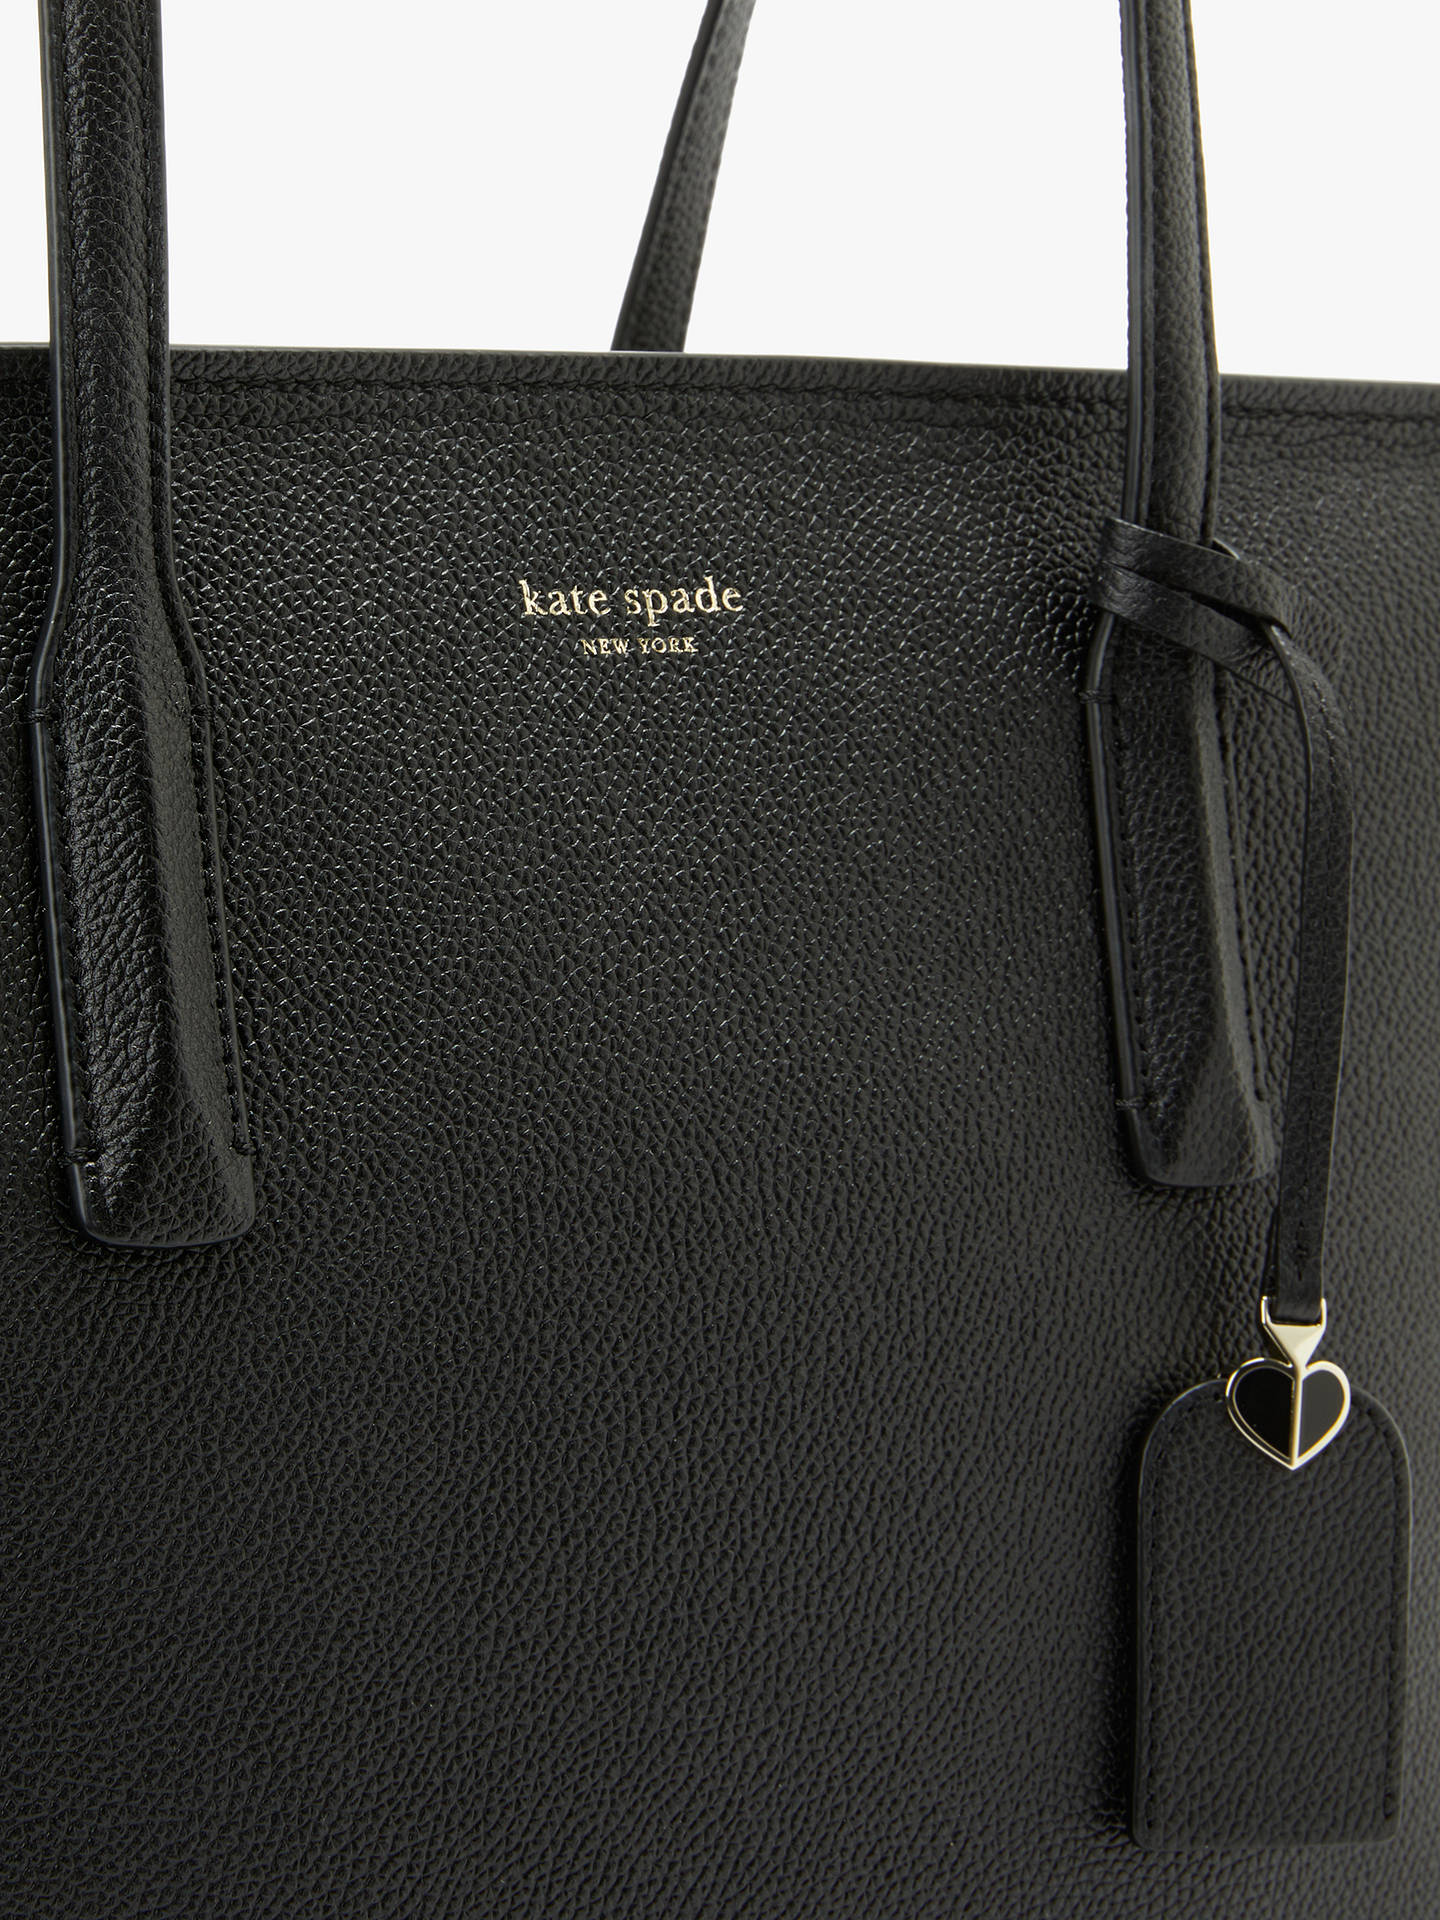 6238c0556916 ... Buykate spade new york Margaux Large Leather Tote Bag